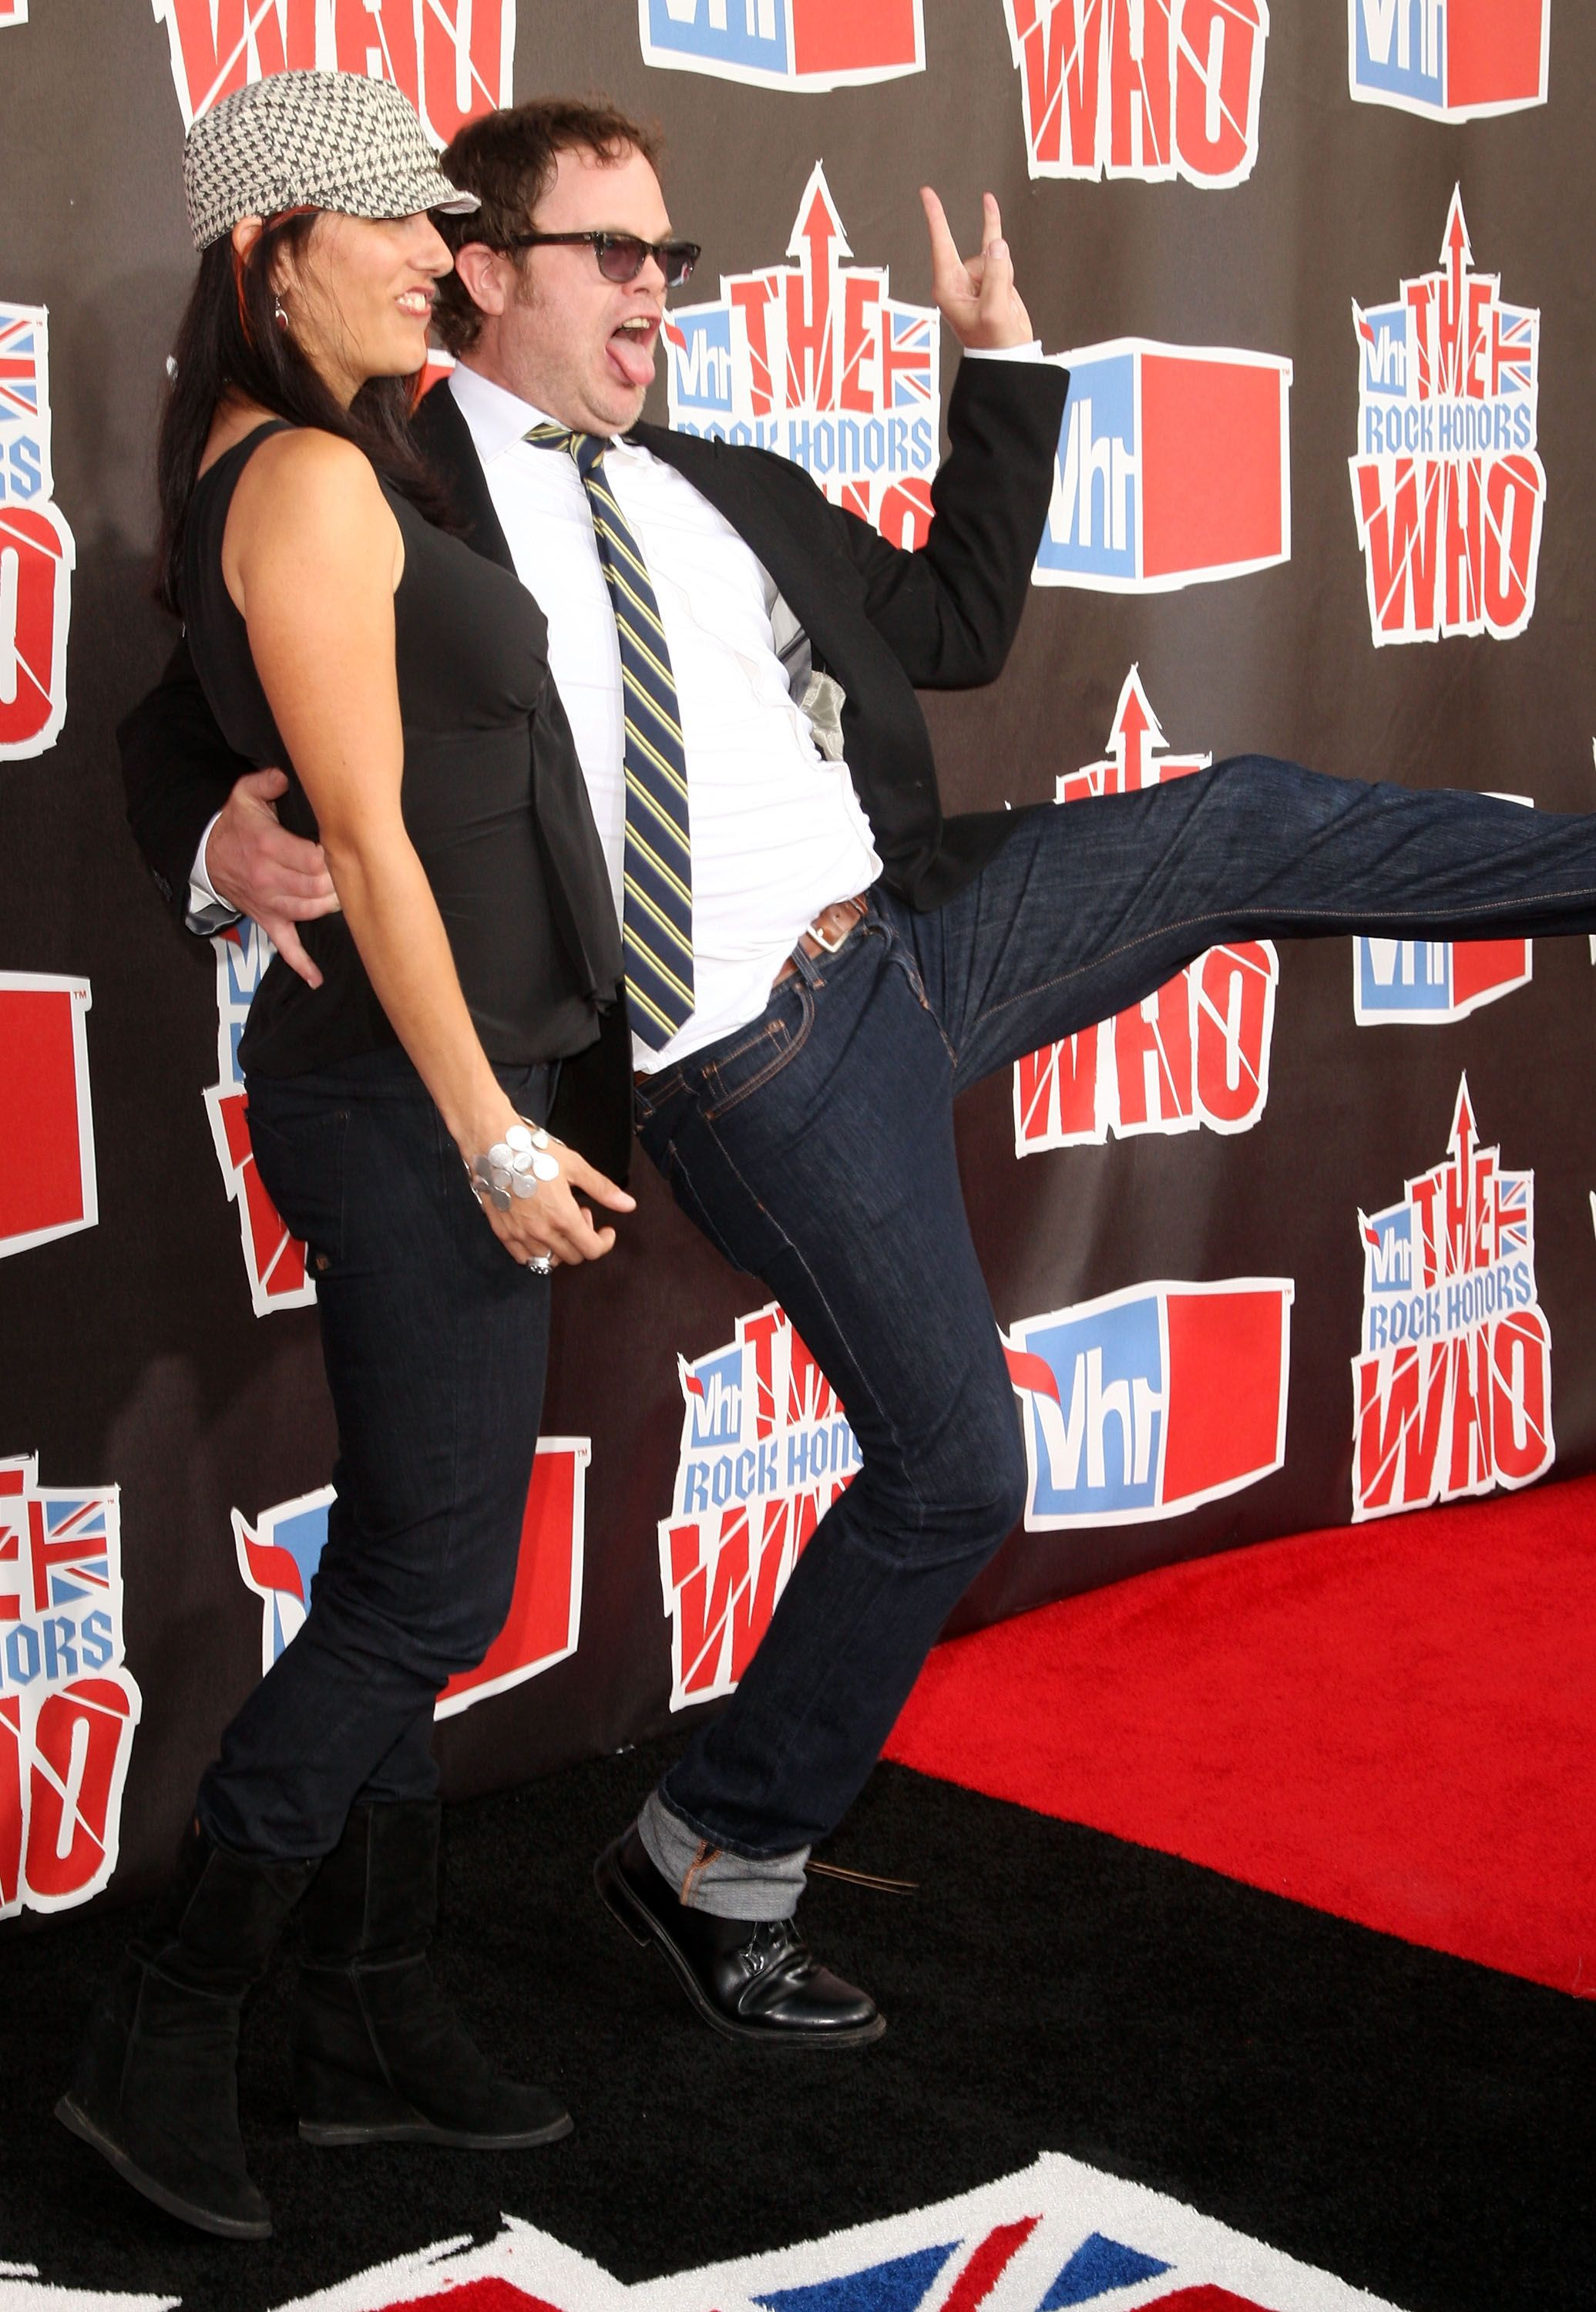 Writer Holiday Reinhorn with husband actor Rainn Wilson arrives at the 2008 VH1 Rock Honors / Getty Images